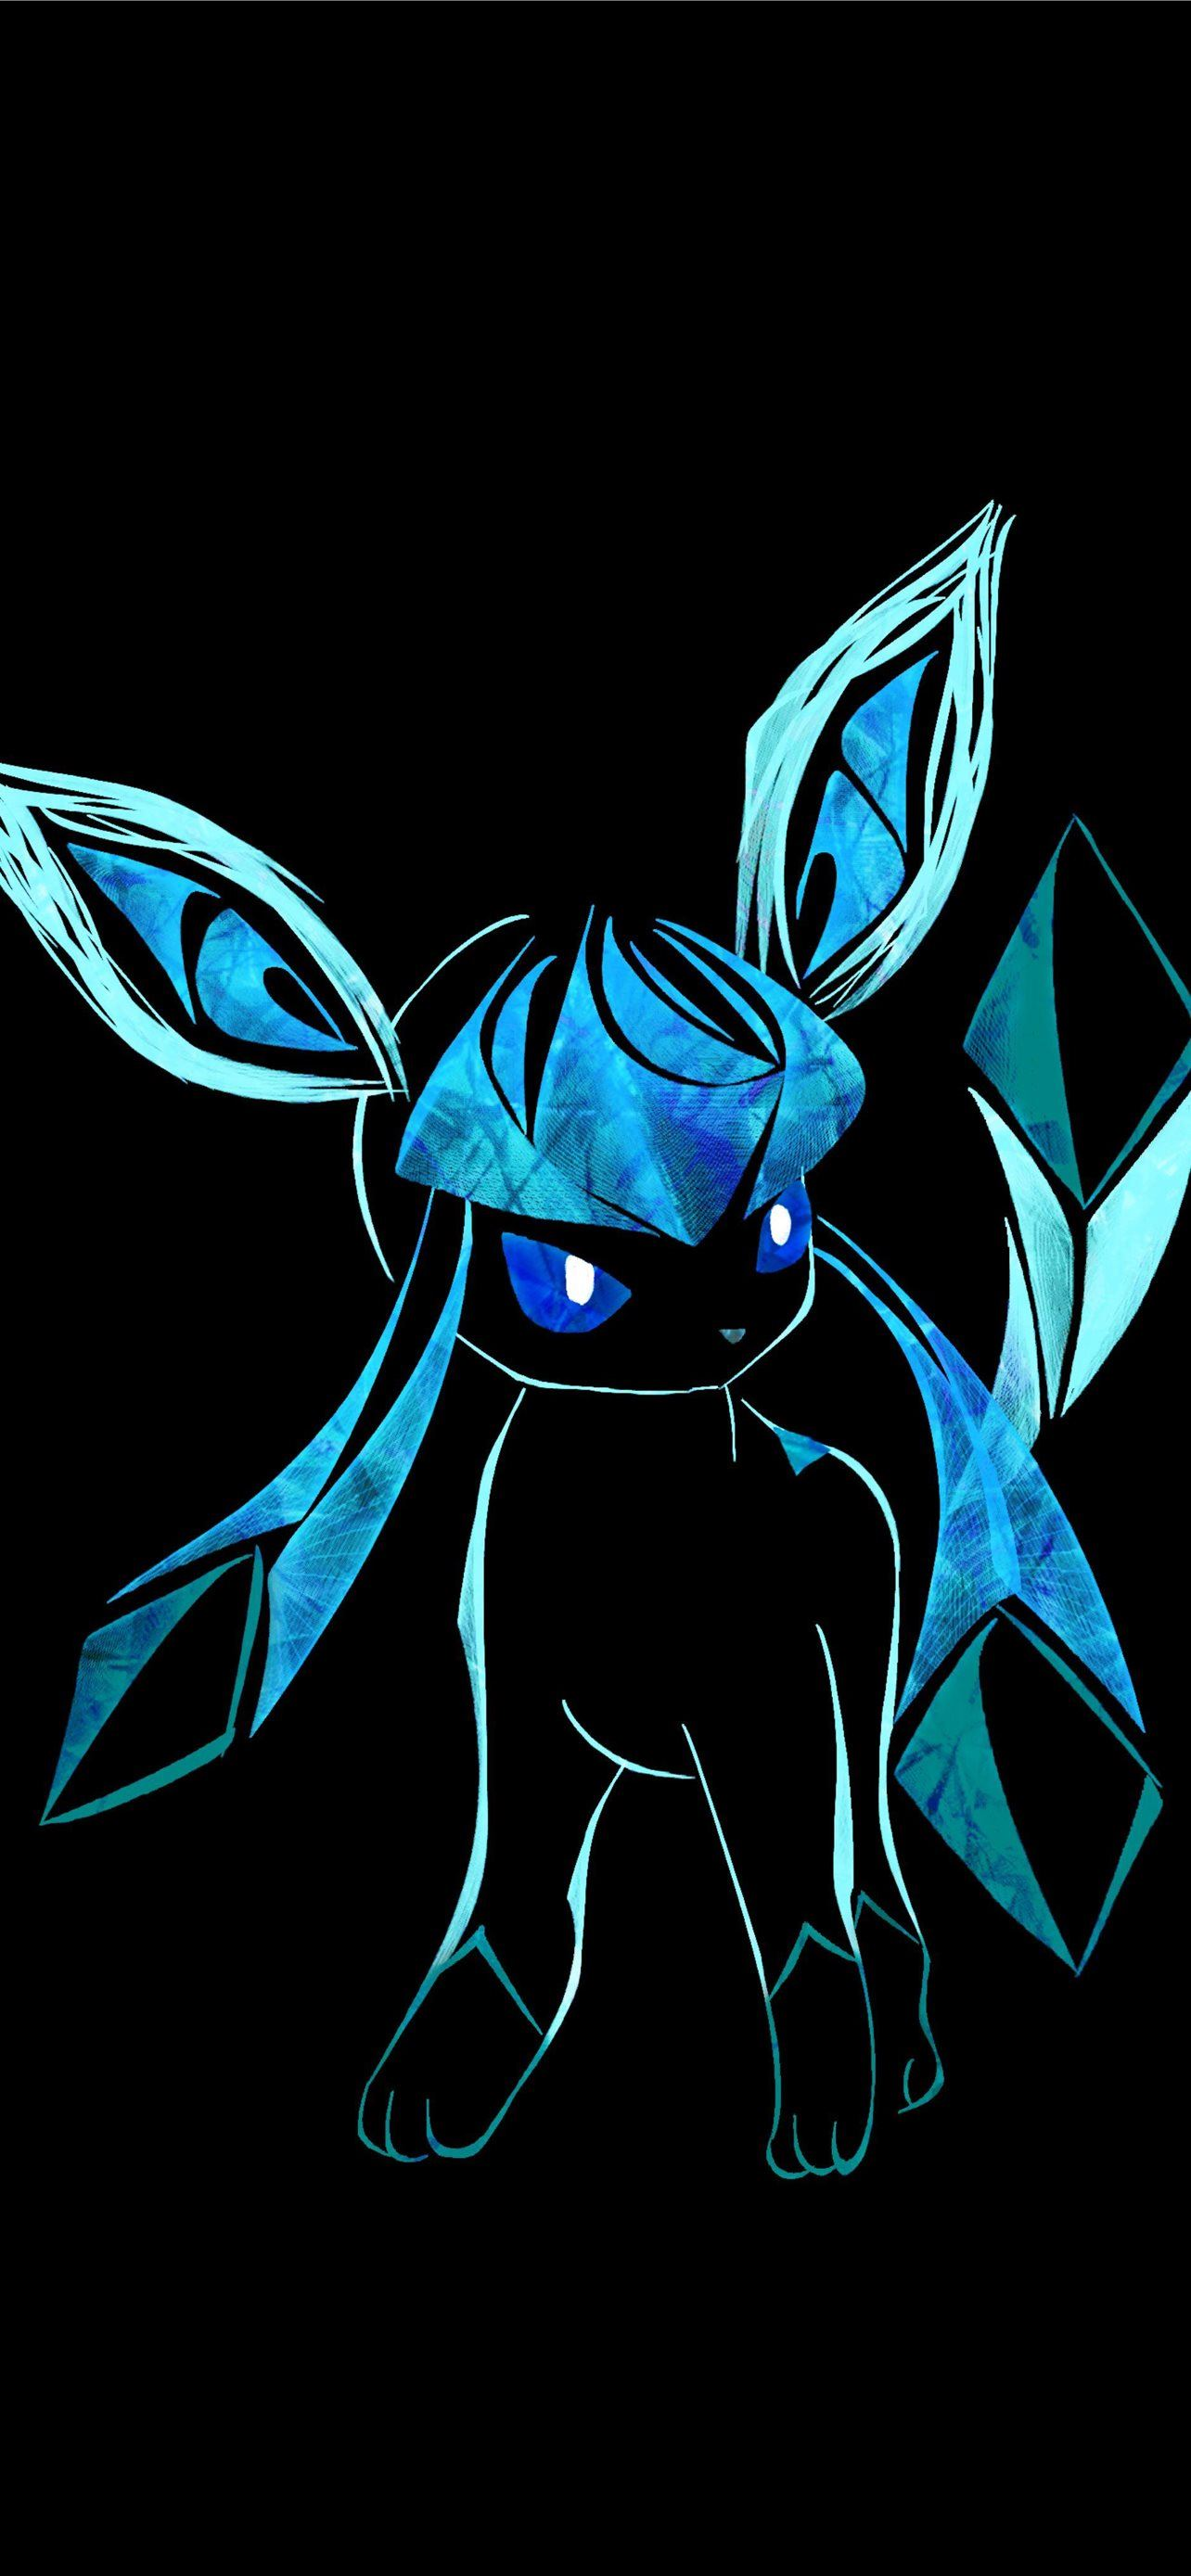 Glaceon Hd Iphone Wallpapers Free Download